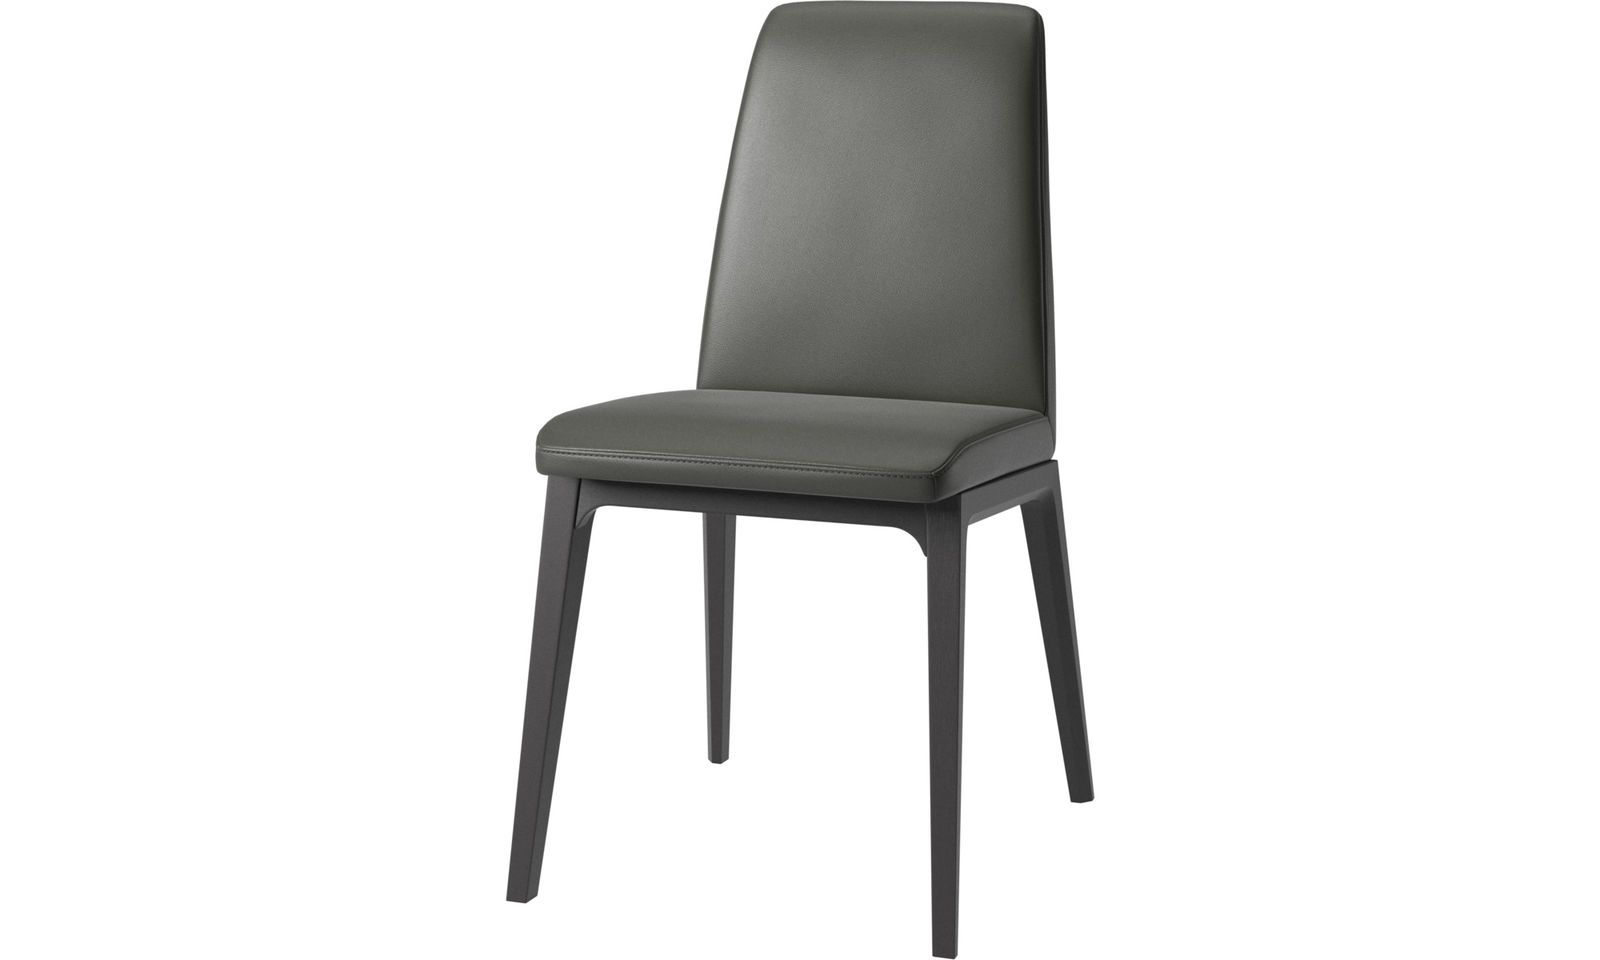 Dining Chairs Lausanne Chair Grey Leather Dining Chairs